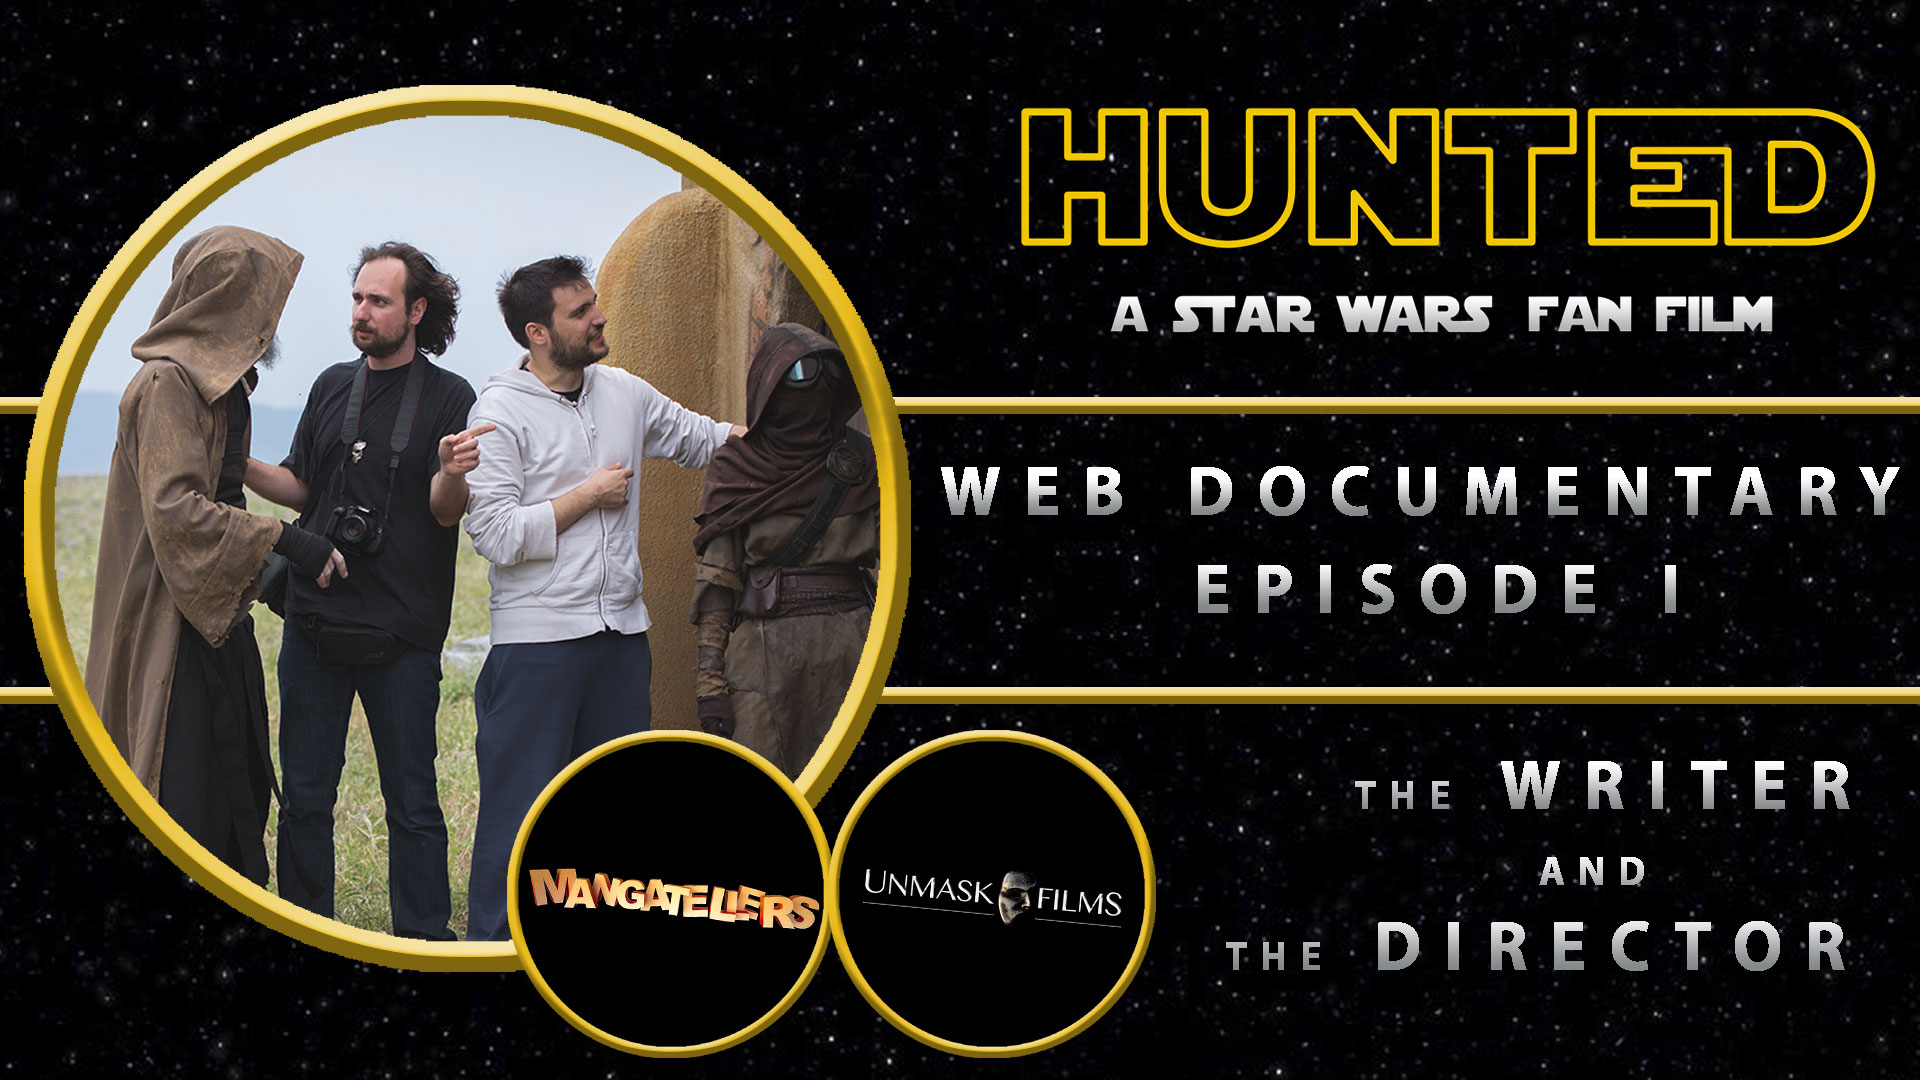 HUNTED Web-Documentary Episode I: The Writer & the Director